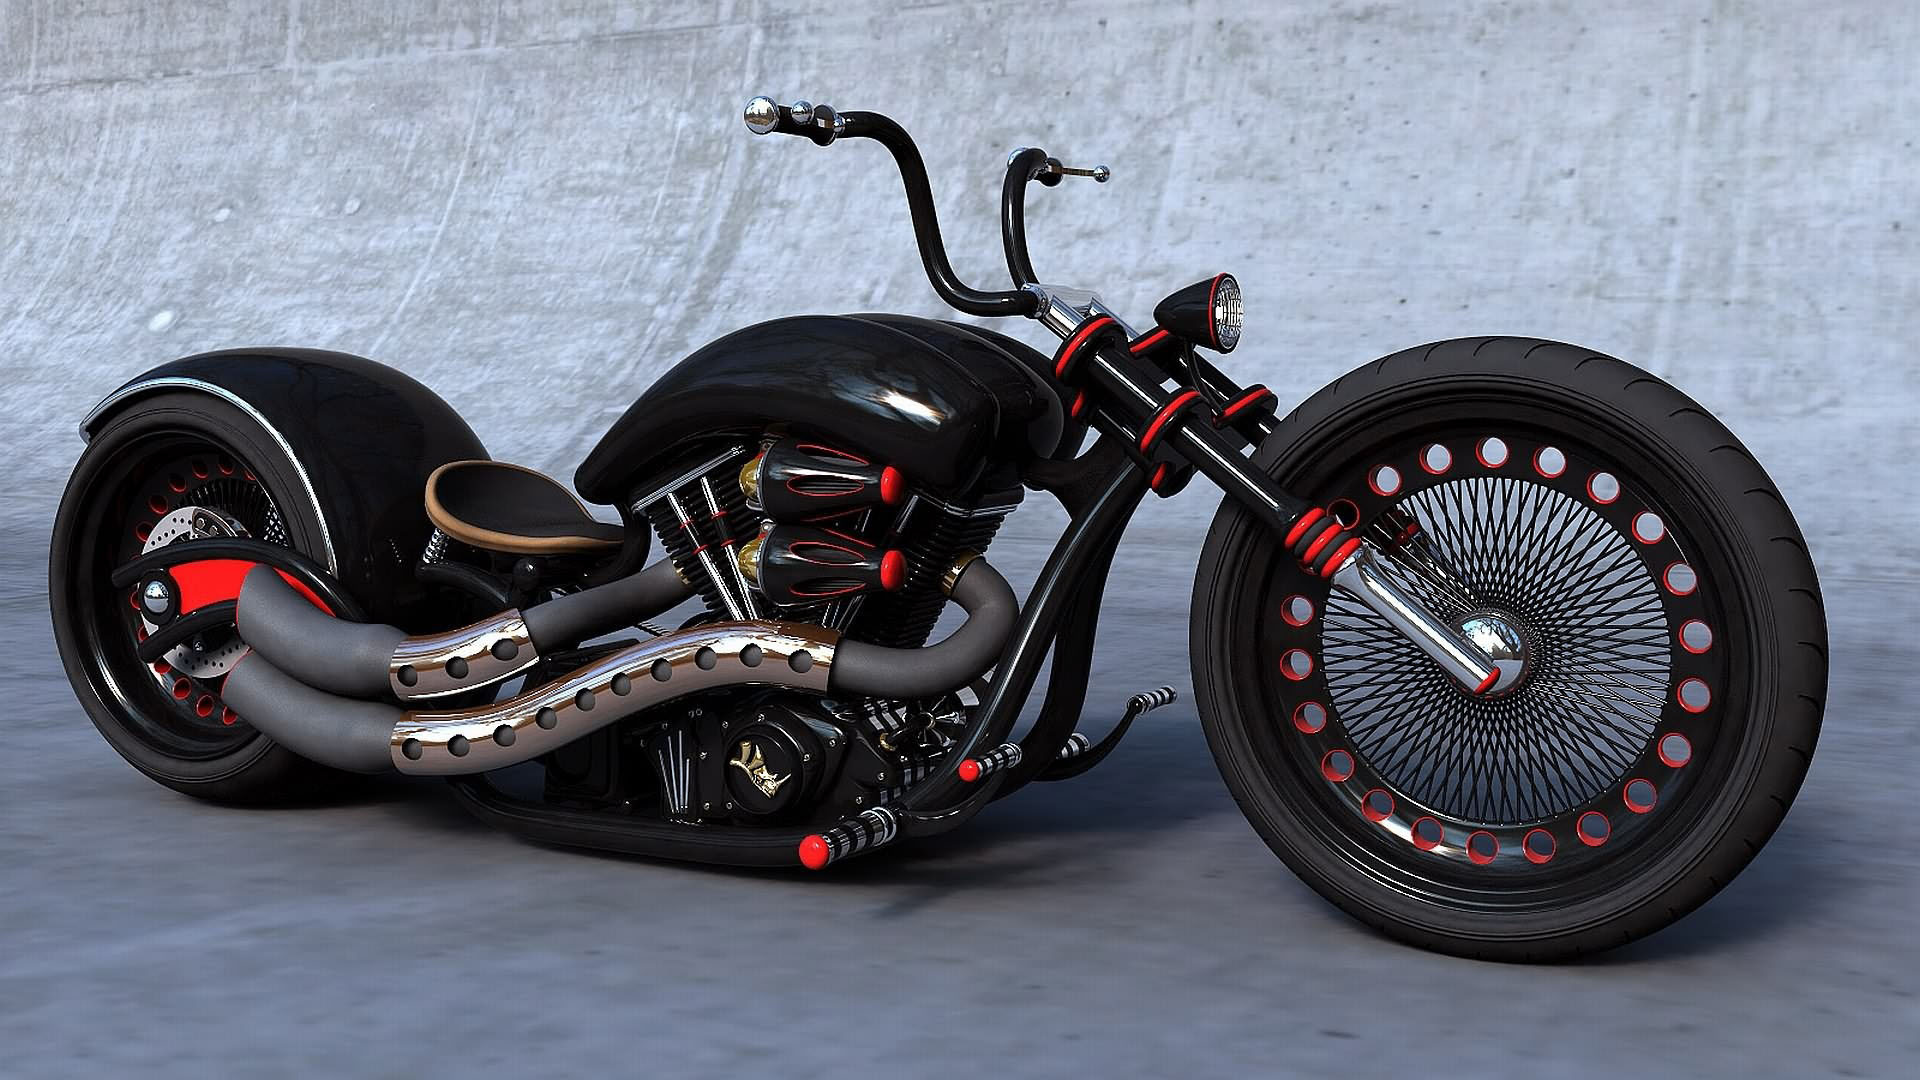 cool chopper wallpaper black motorcycle goodwp motorcycles 1920x1080